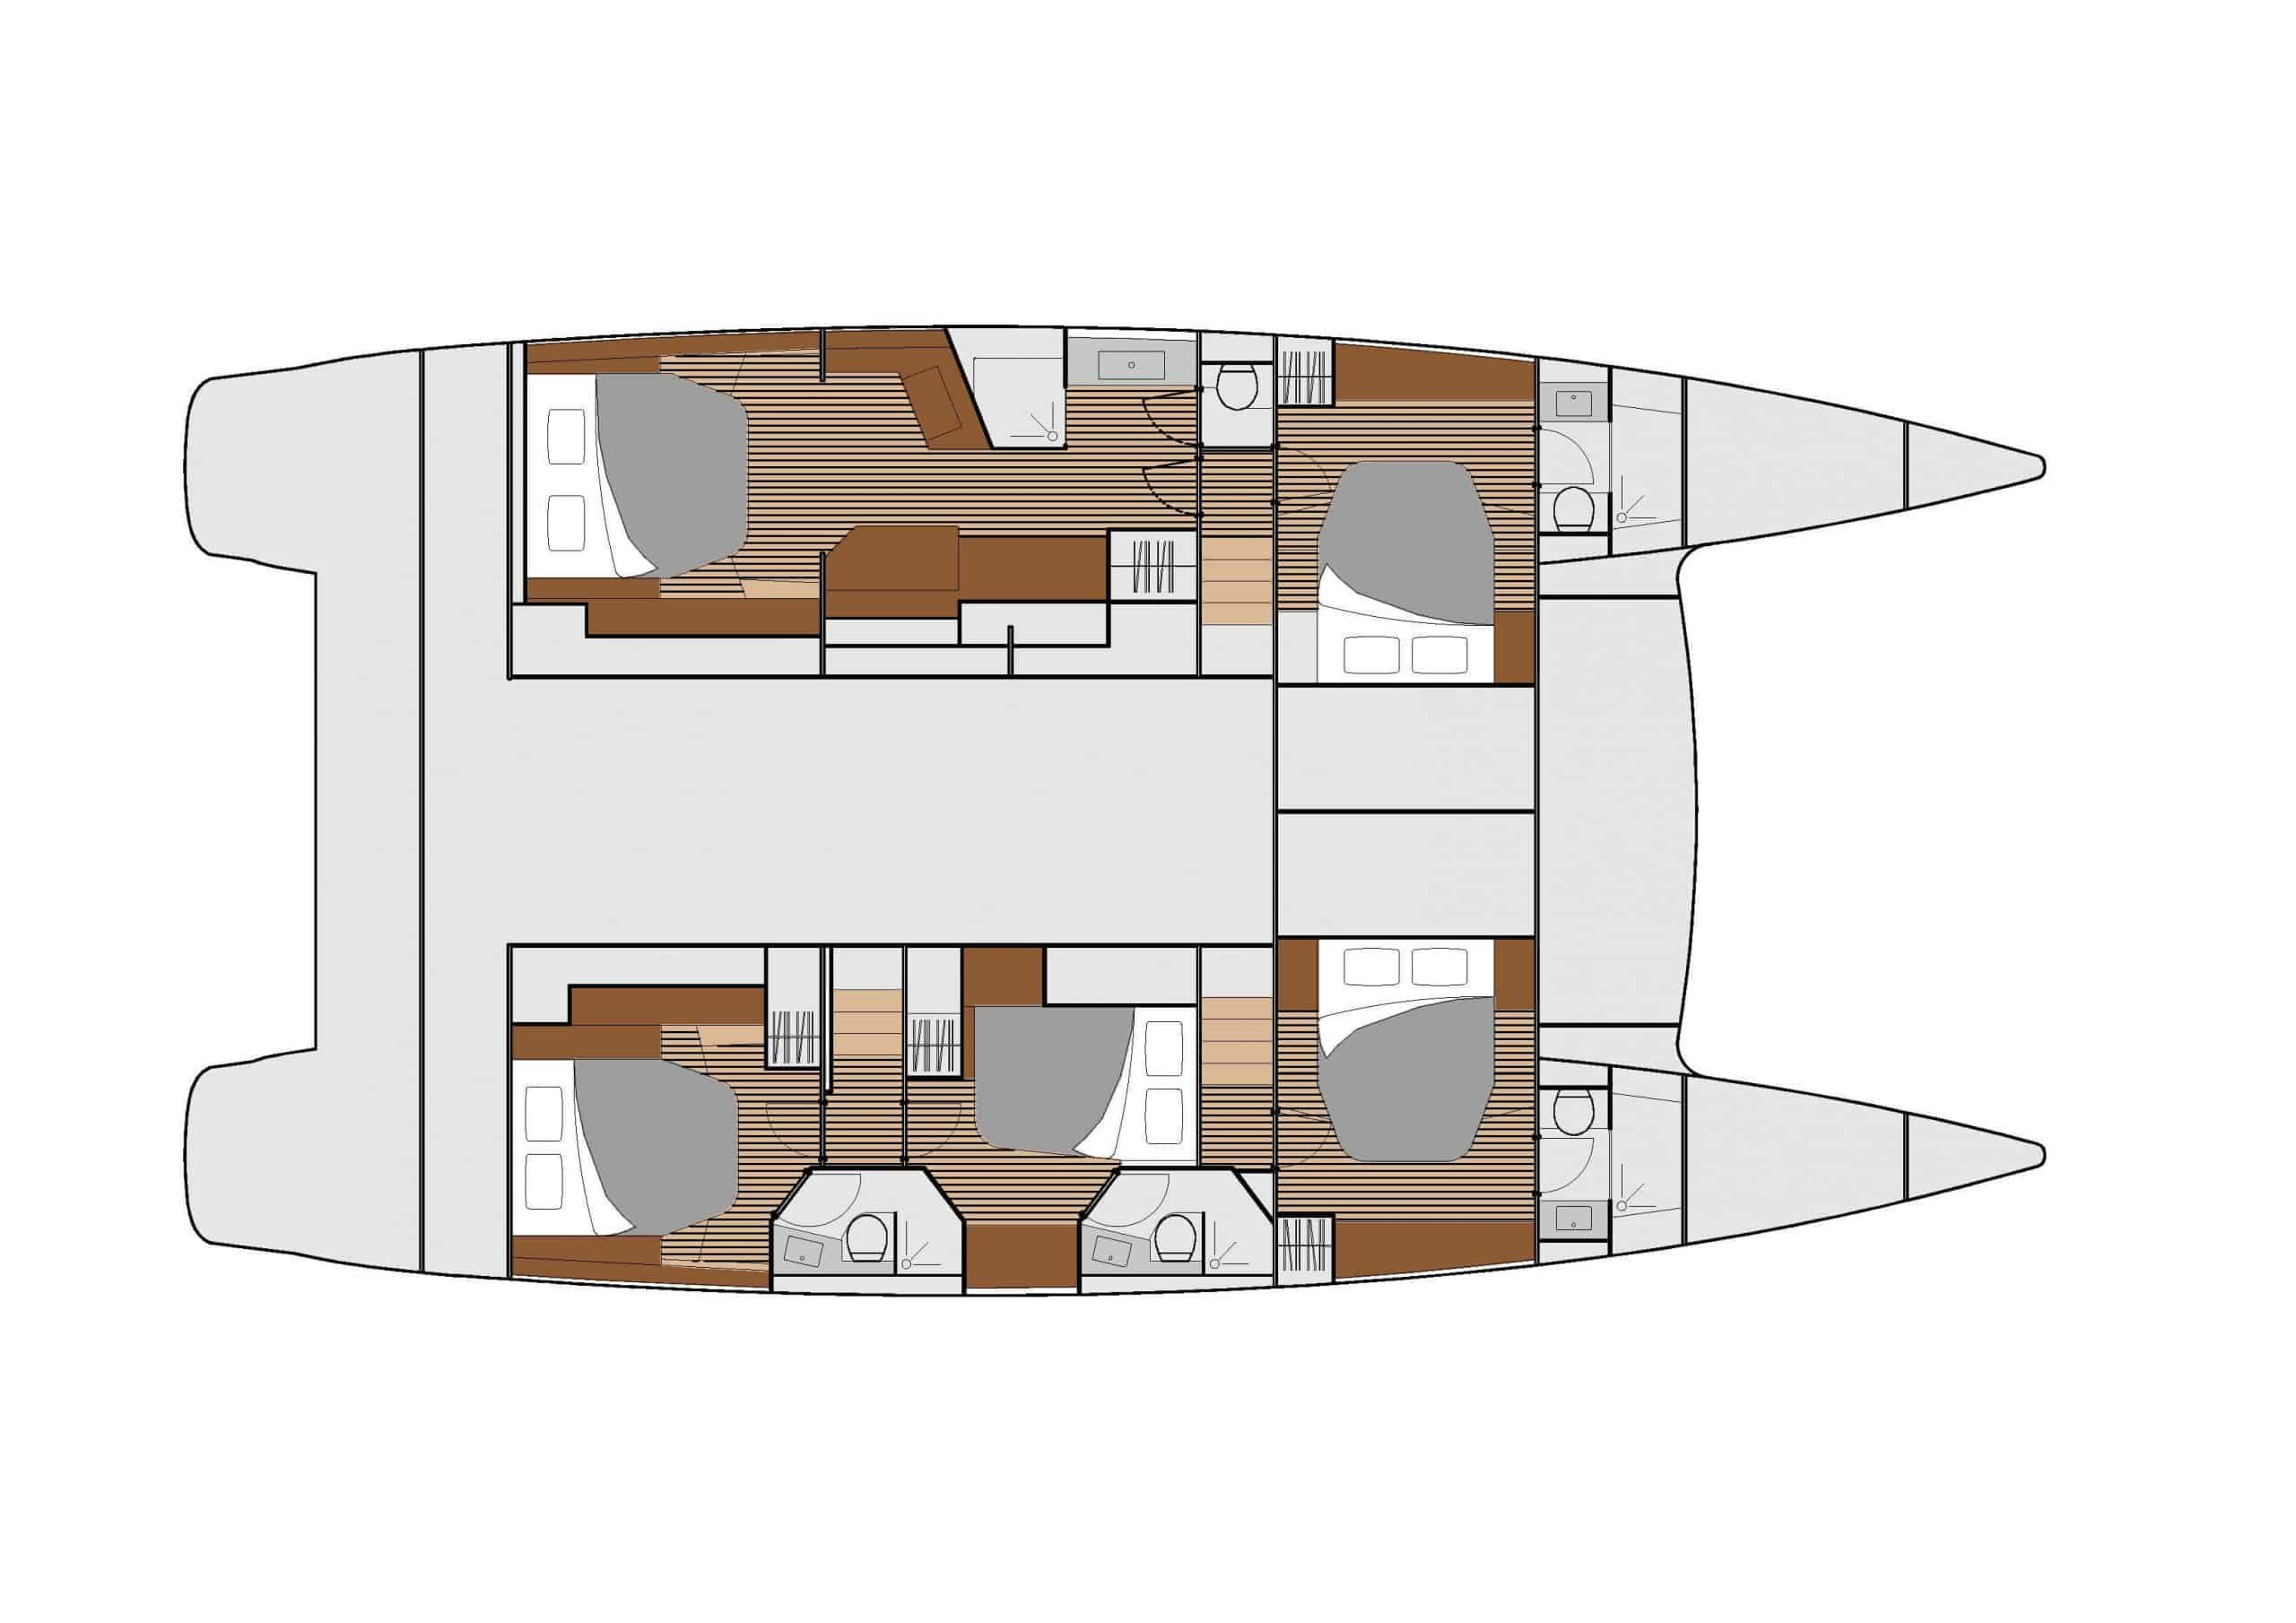 ip58-6-layout